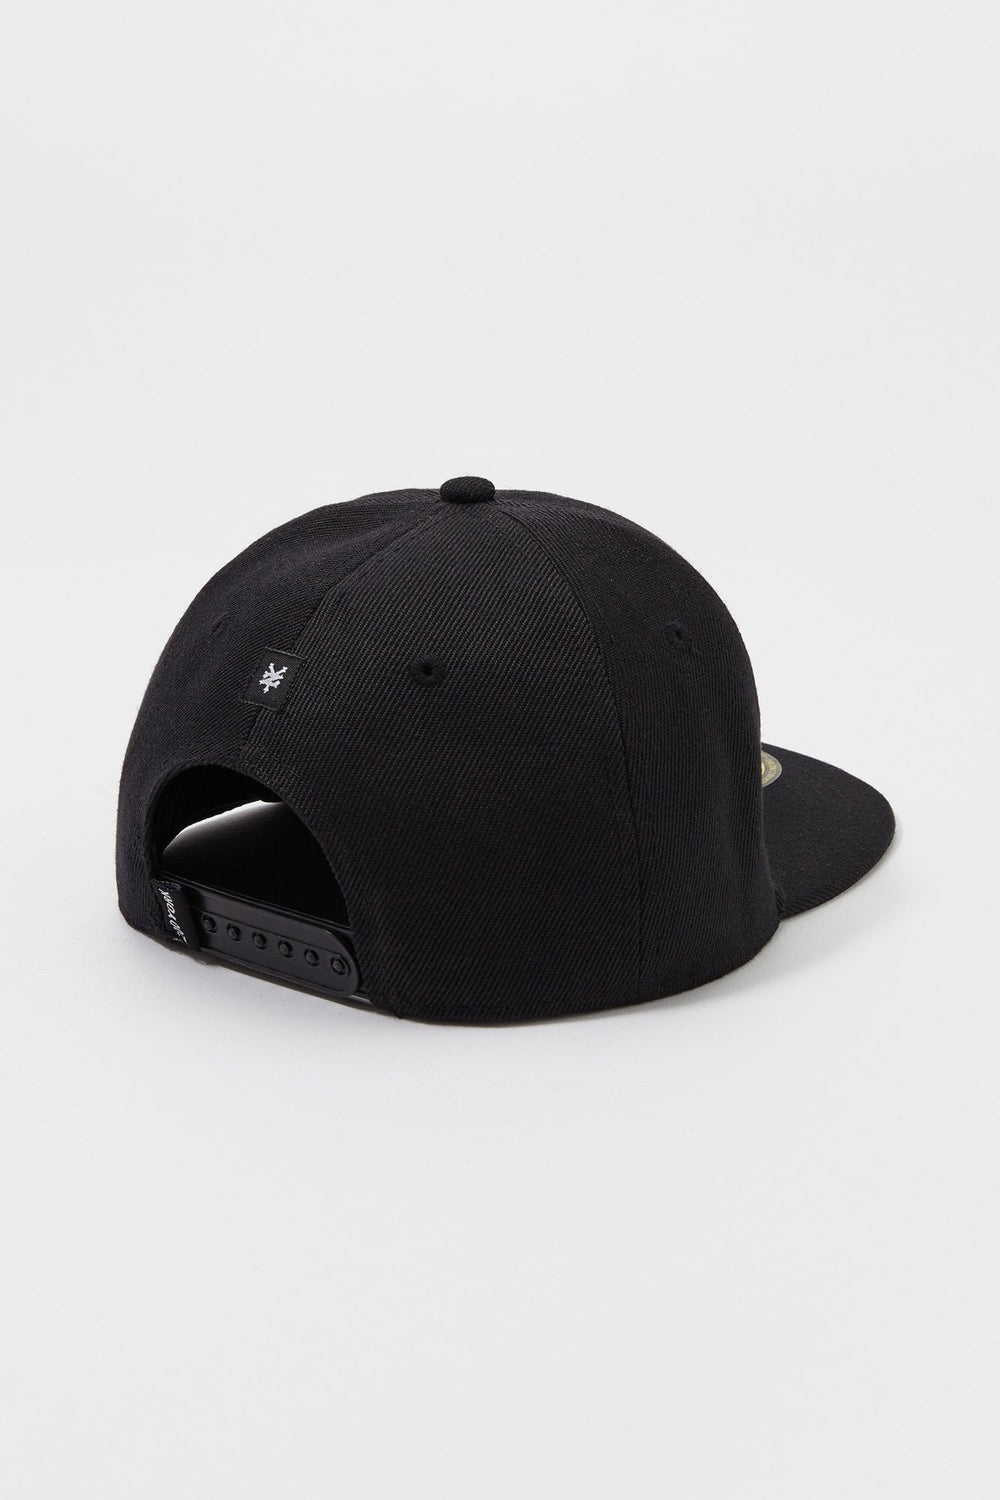 Zoo York Mens Box Logo Snapback Hat Black